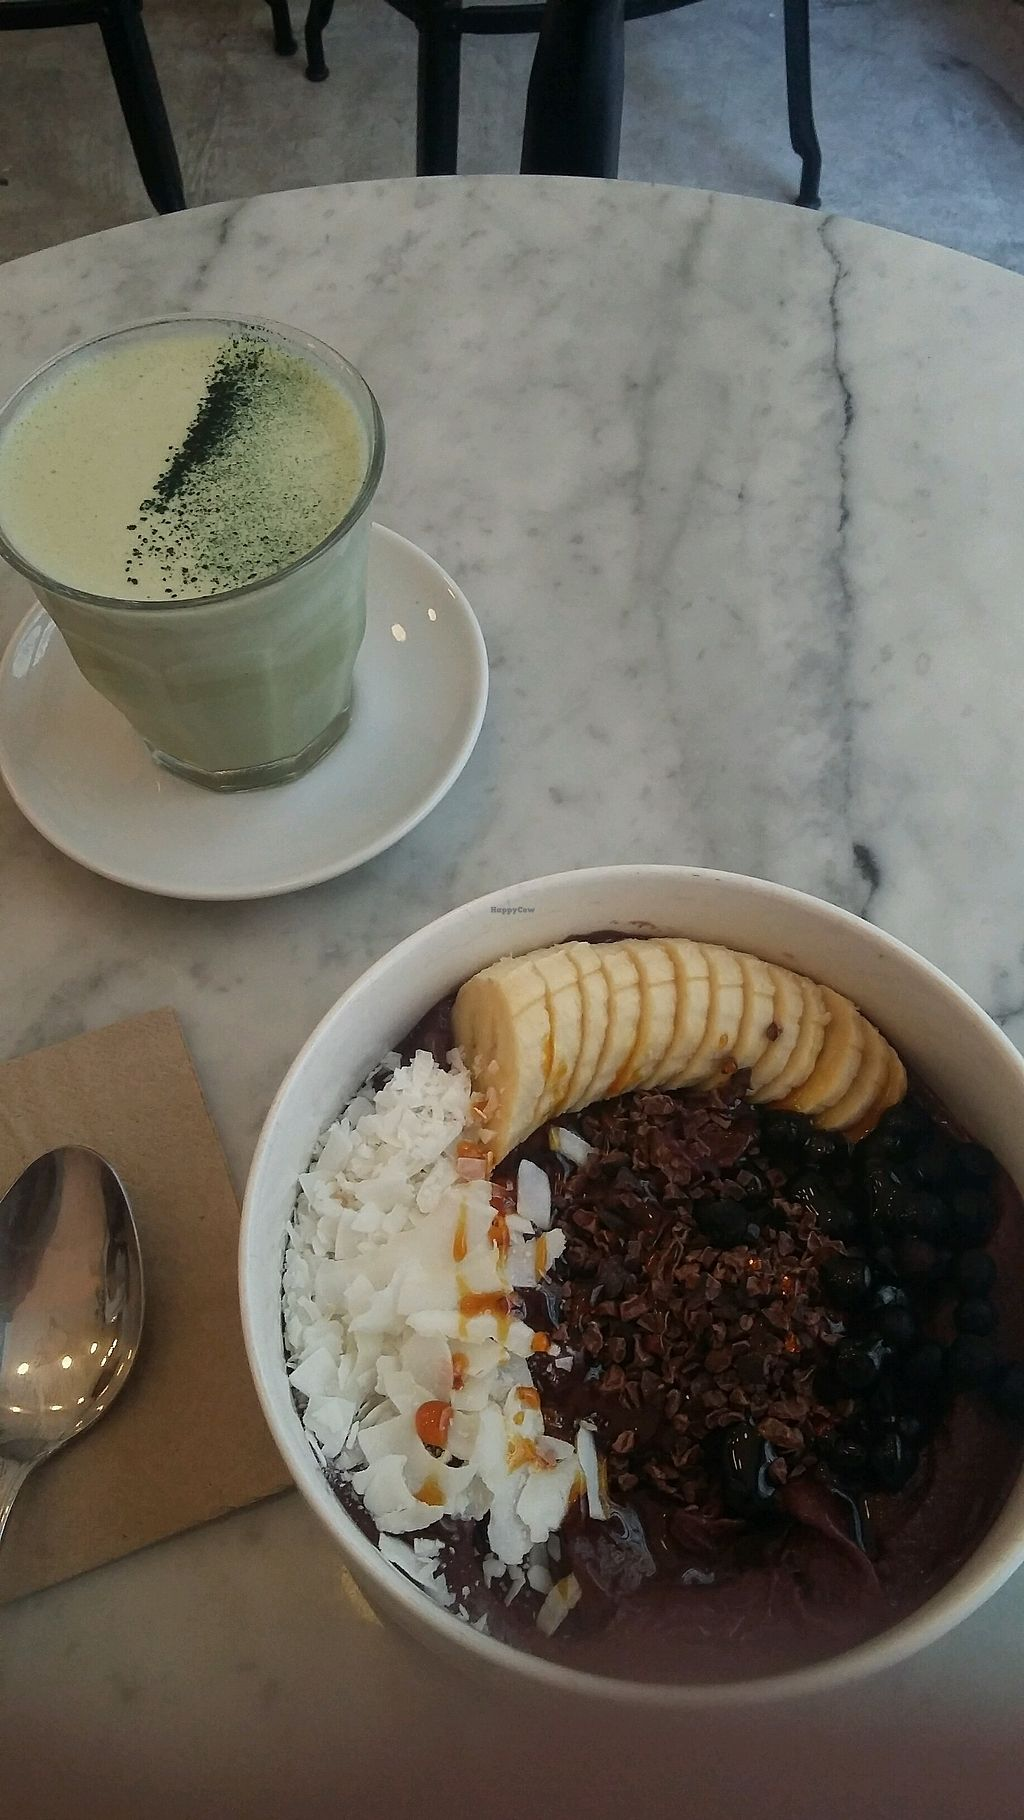 "Photo of Love Juice Bar  by <a href=""/members/profile/lola.leva"">lola.leva</a> <br/>acai bowl et matcha latte <br/> February 24, 2018  - <a href='/contact/abuse/image/86271/363315'>Report</a>"